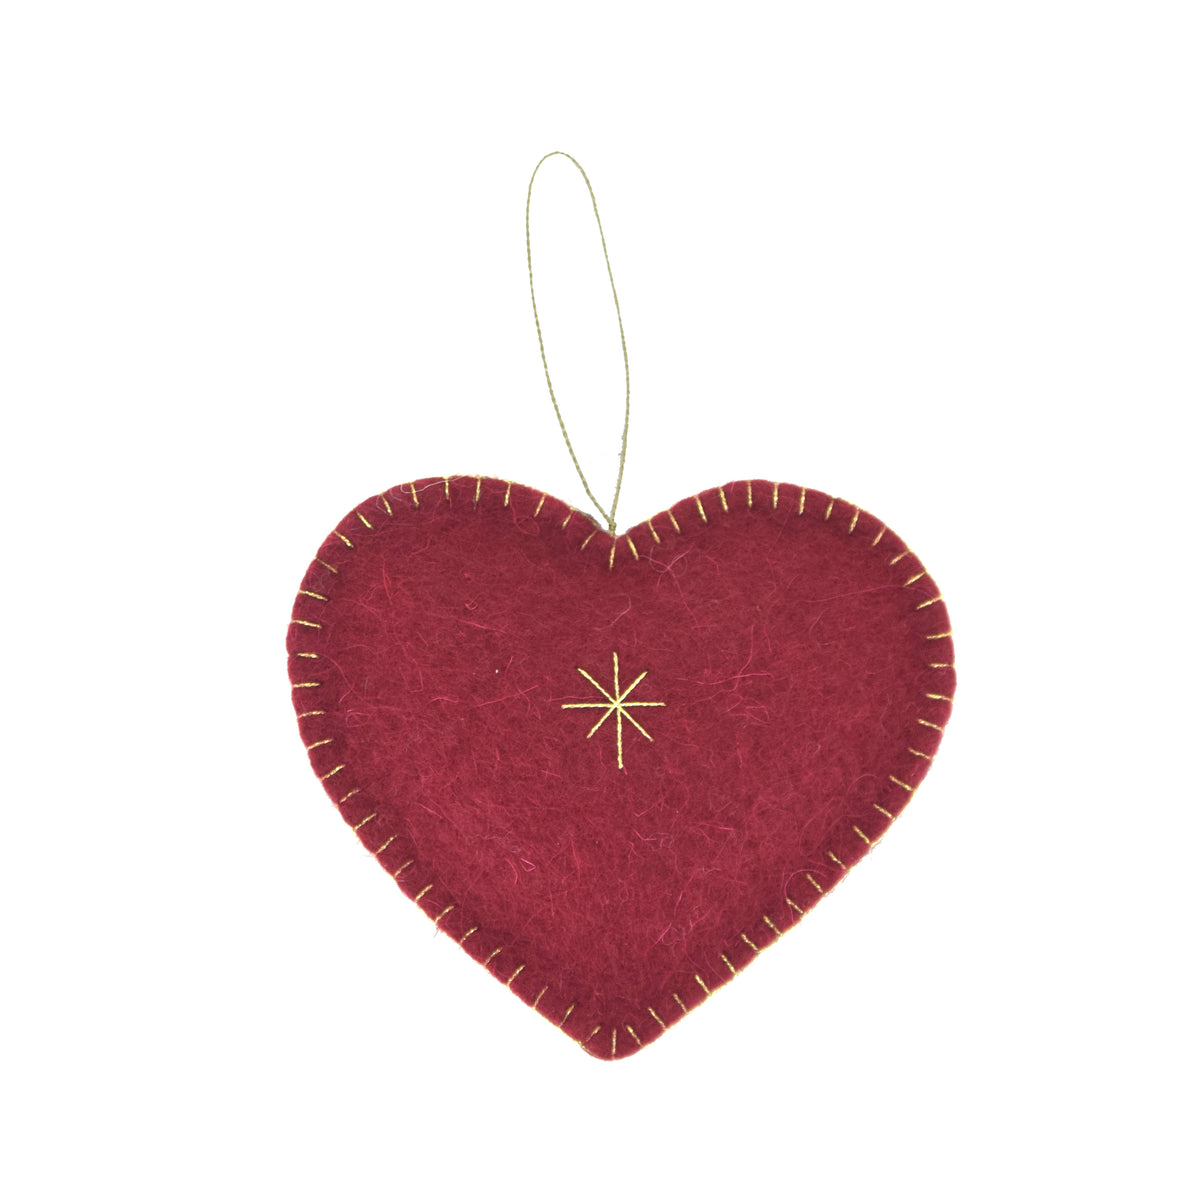 Heart Felted Ornament - Red Wine